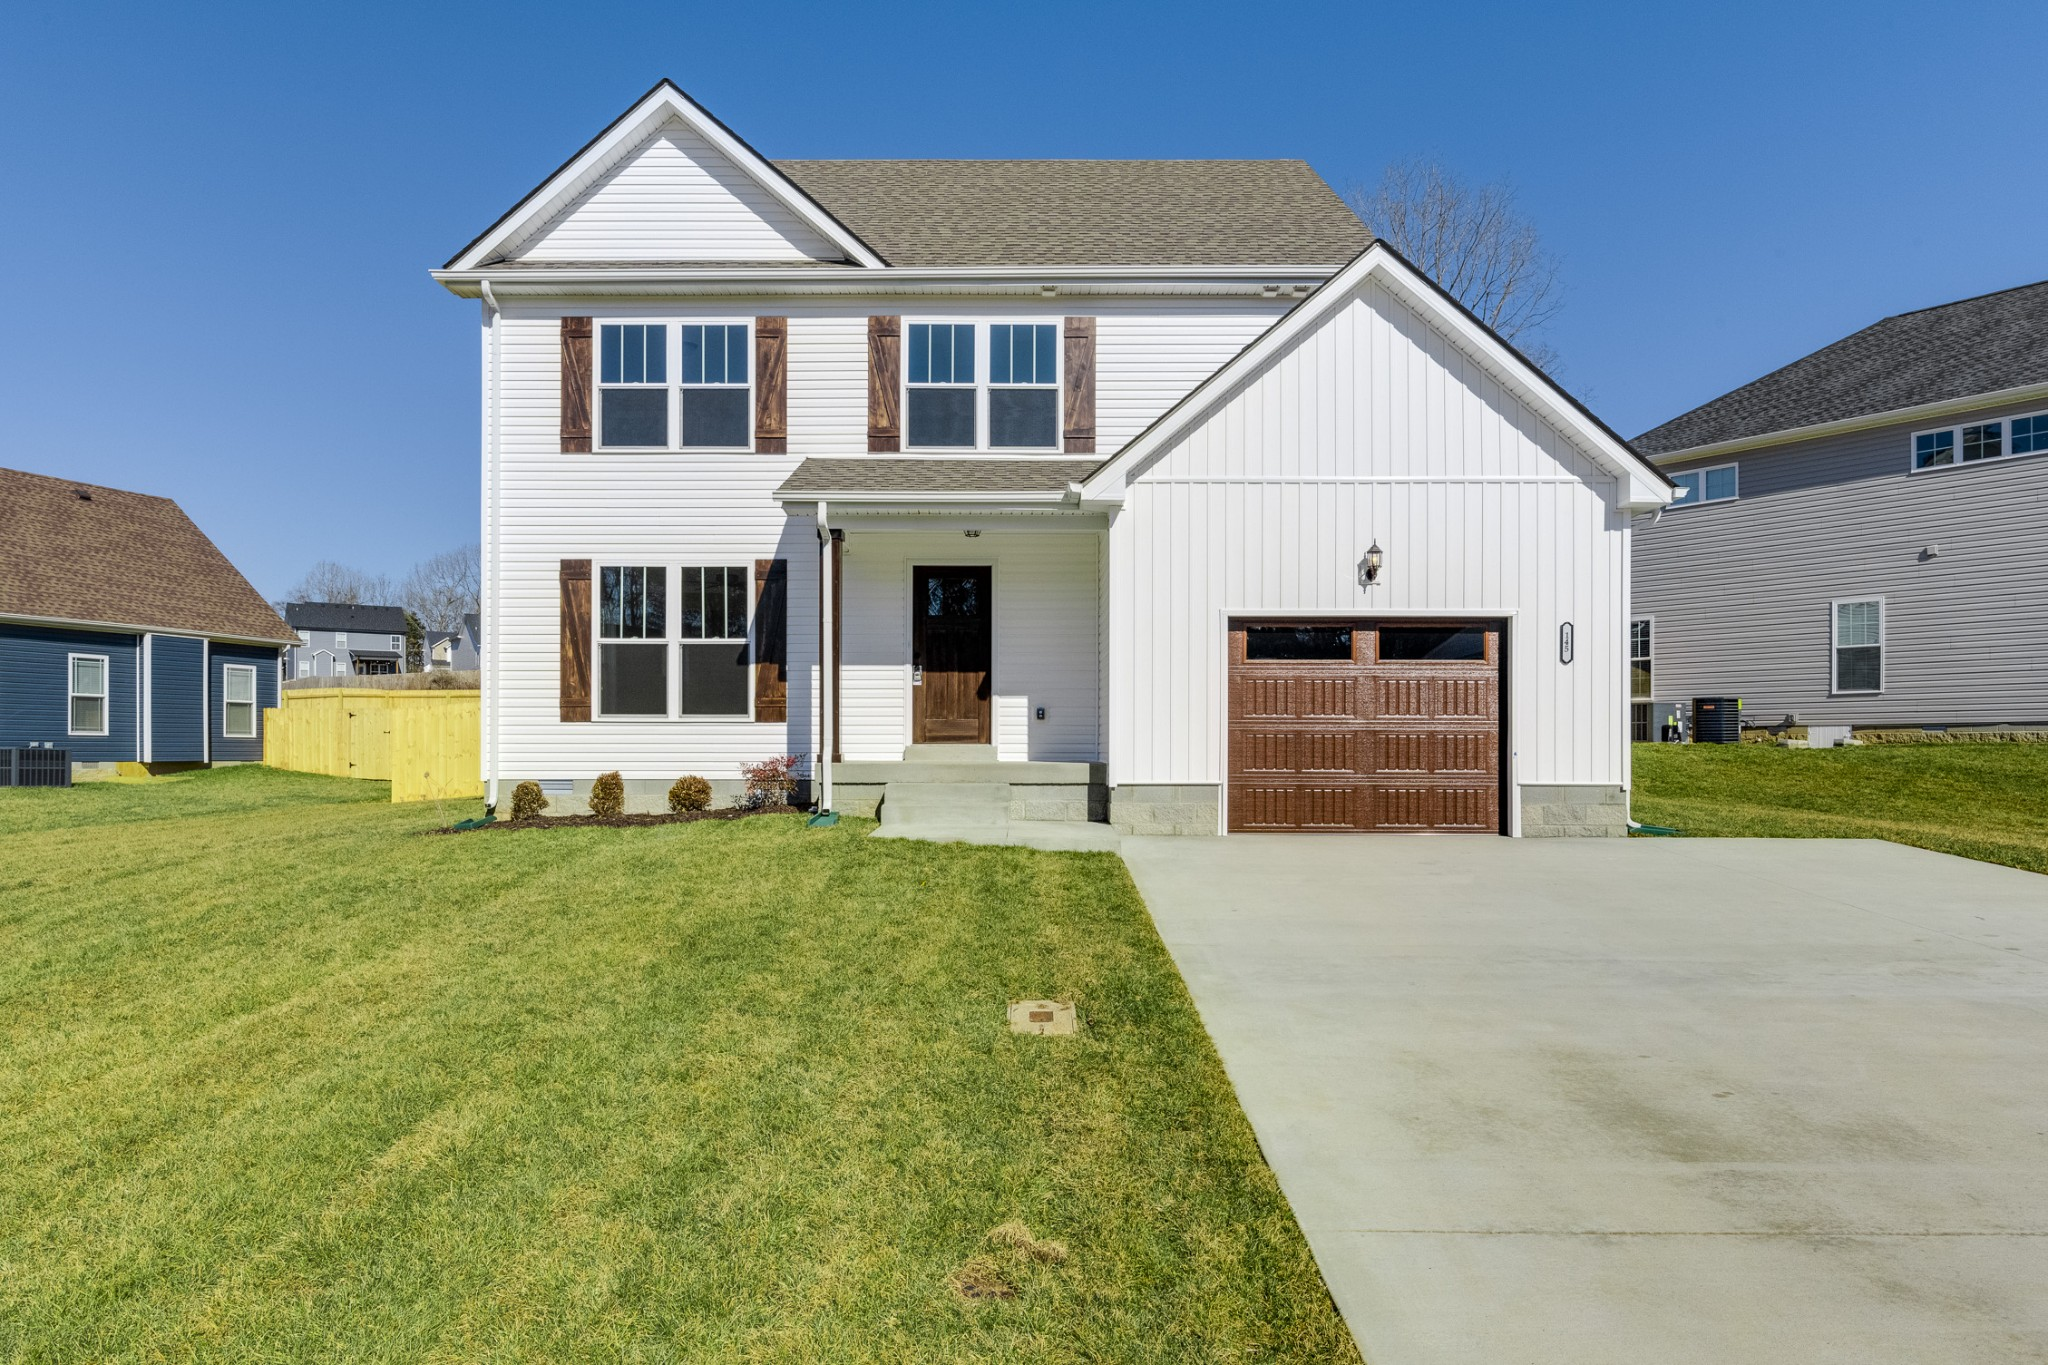 145 Bonnell Dr Property Photo - Clarksville, TN real estate listing